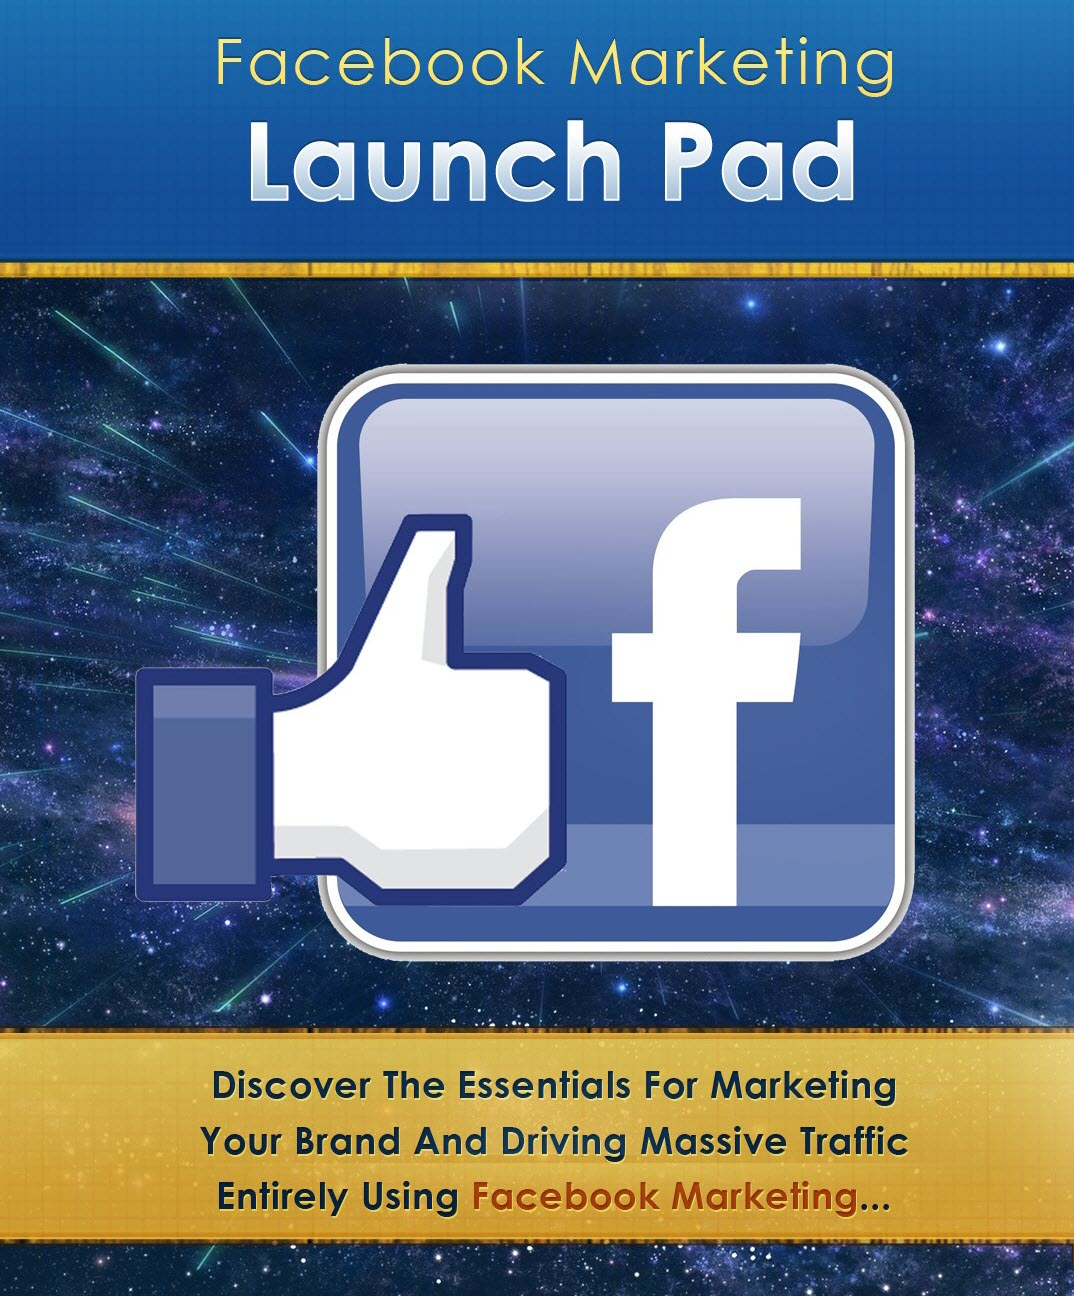 How to advertise on Facebook for traffic